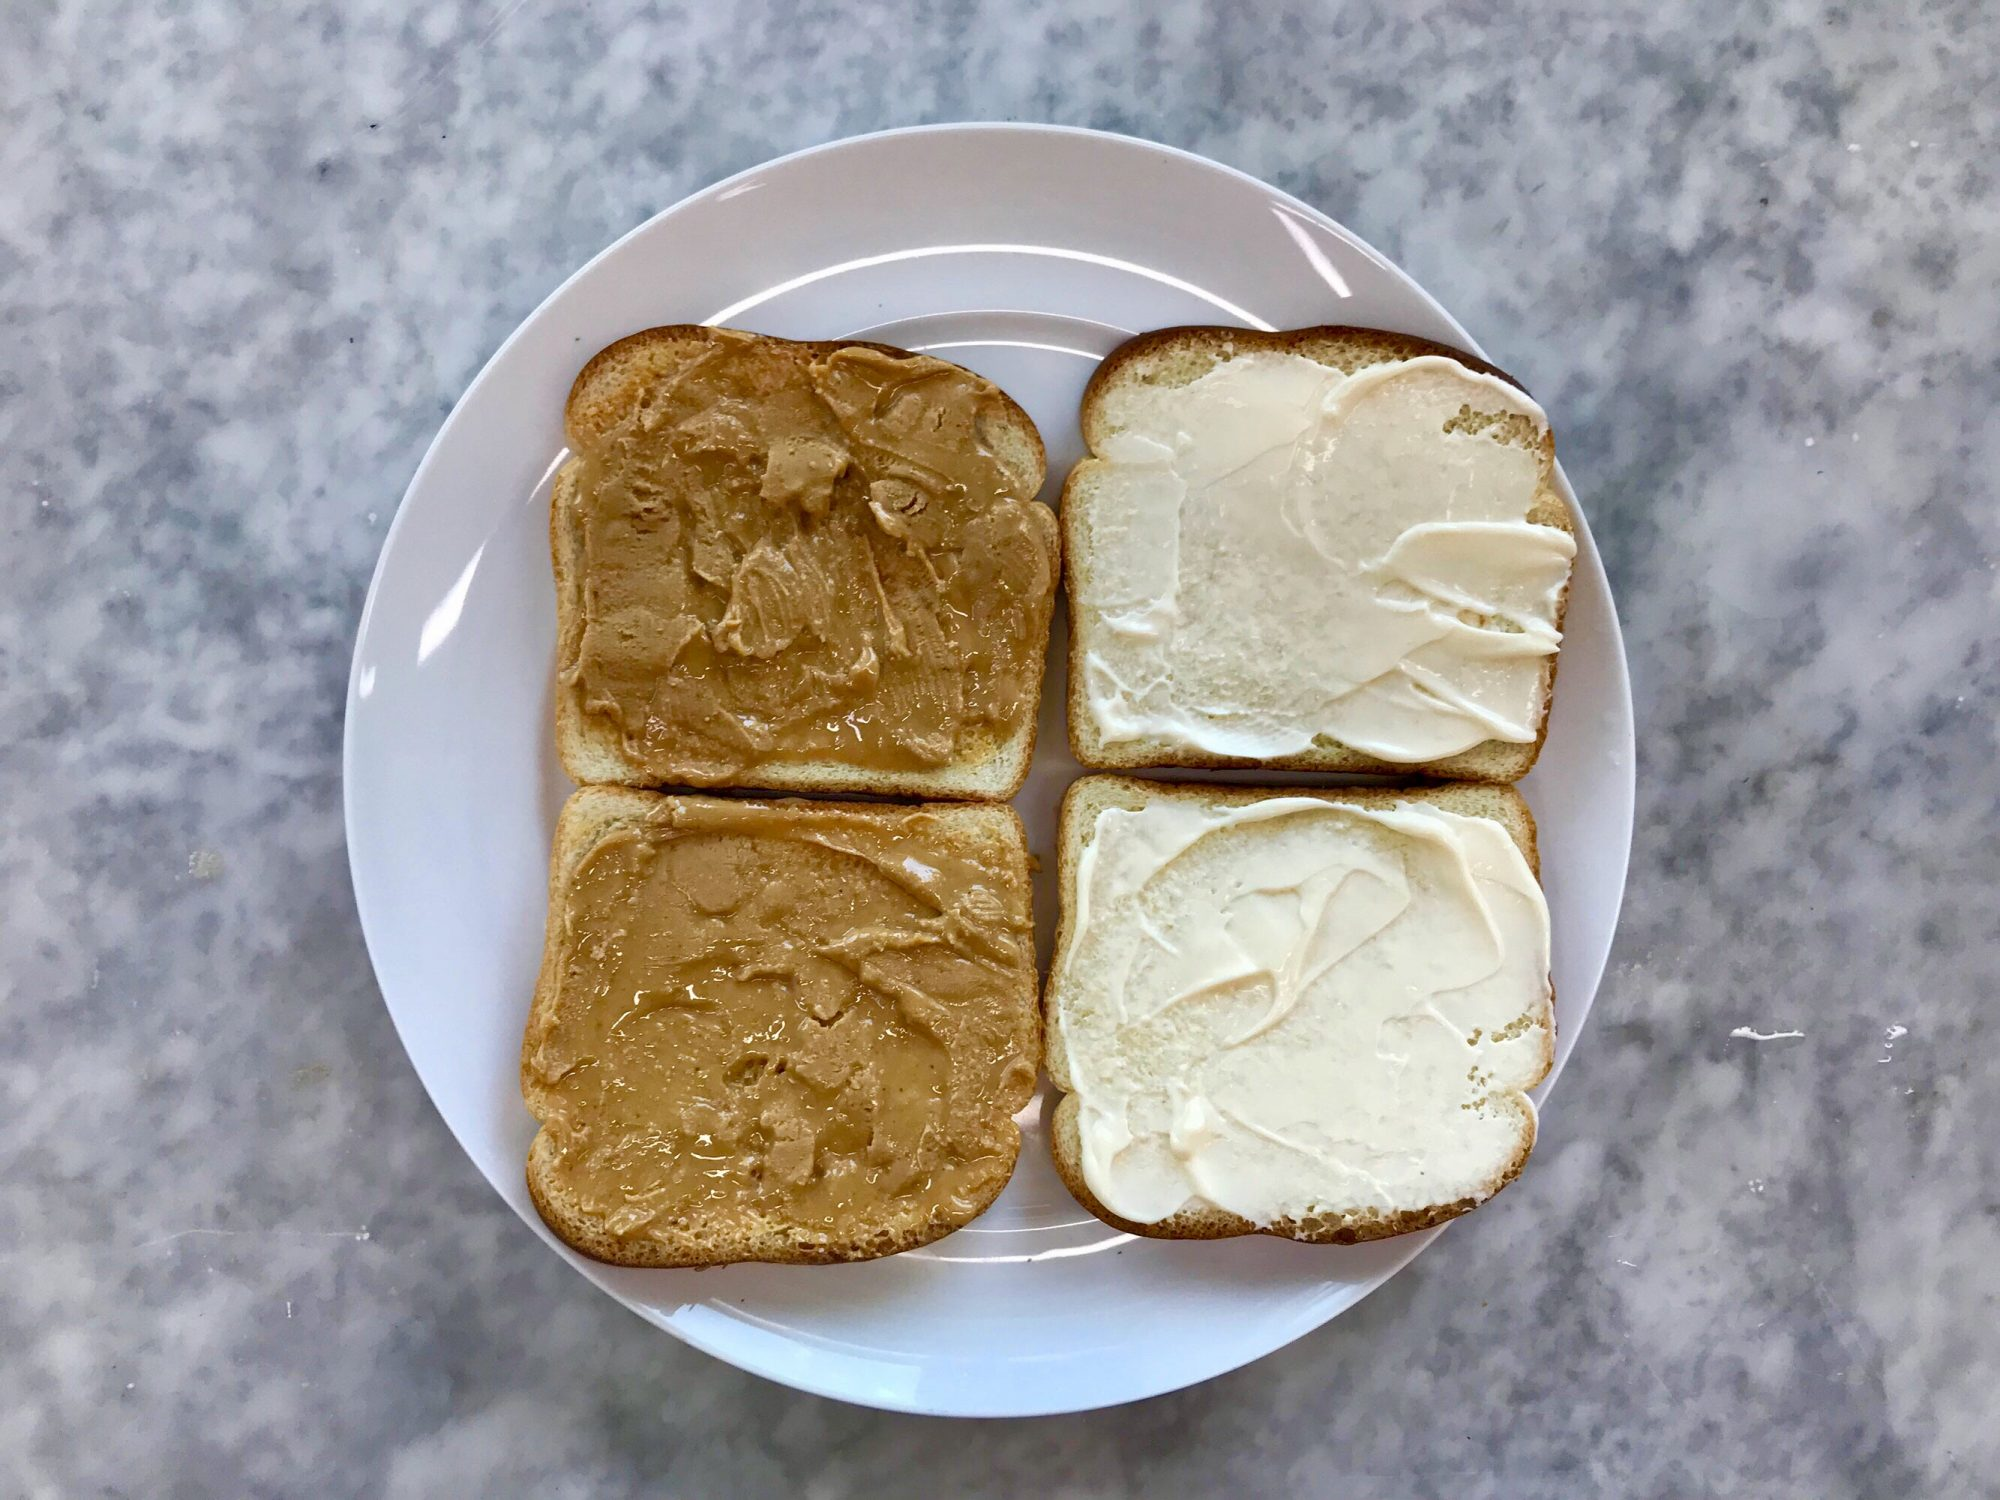 Peanut Butter and Mayo Sandwiches Sound Like a Sick Joke, But They're Not